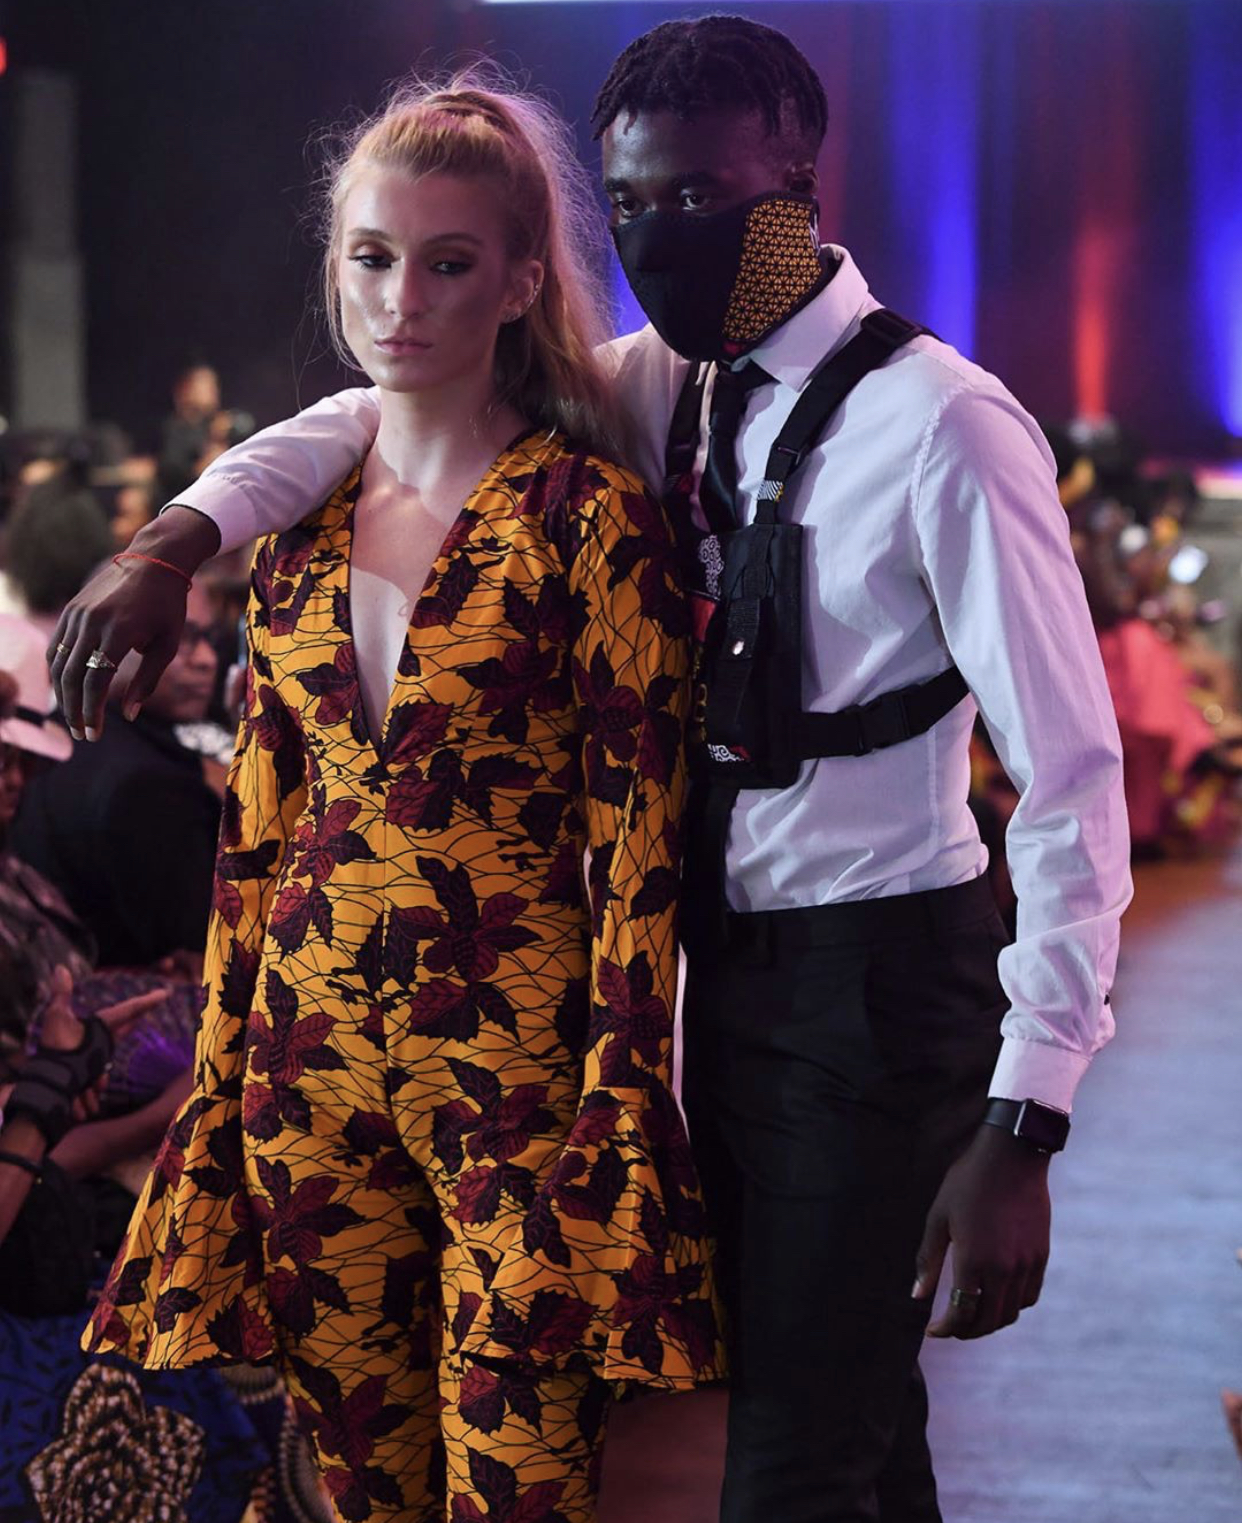 African fashion show, showcasing bold prints and beautiful designs.